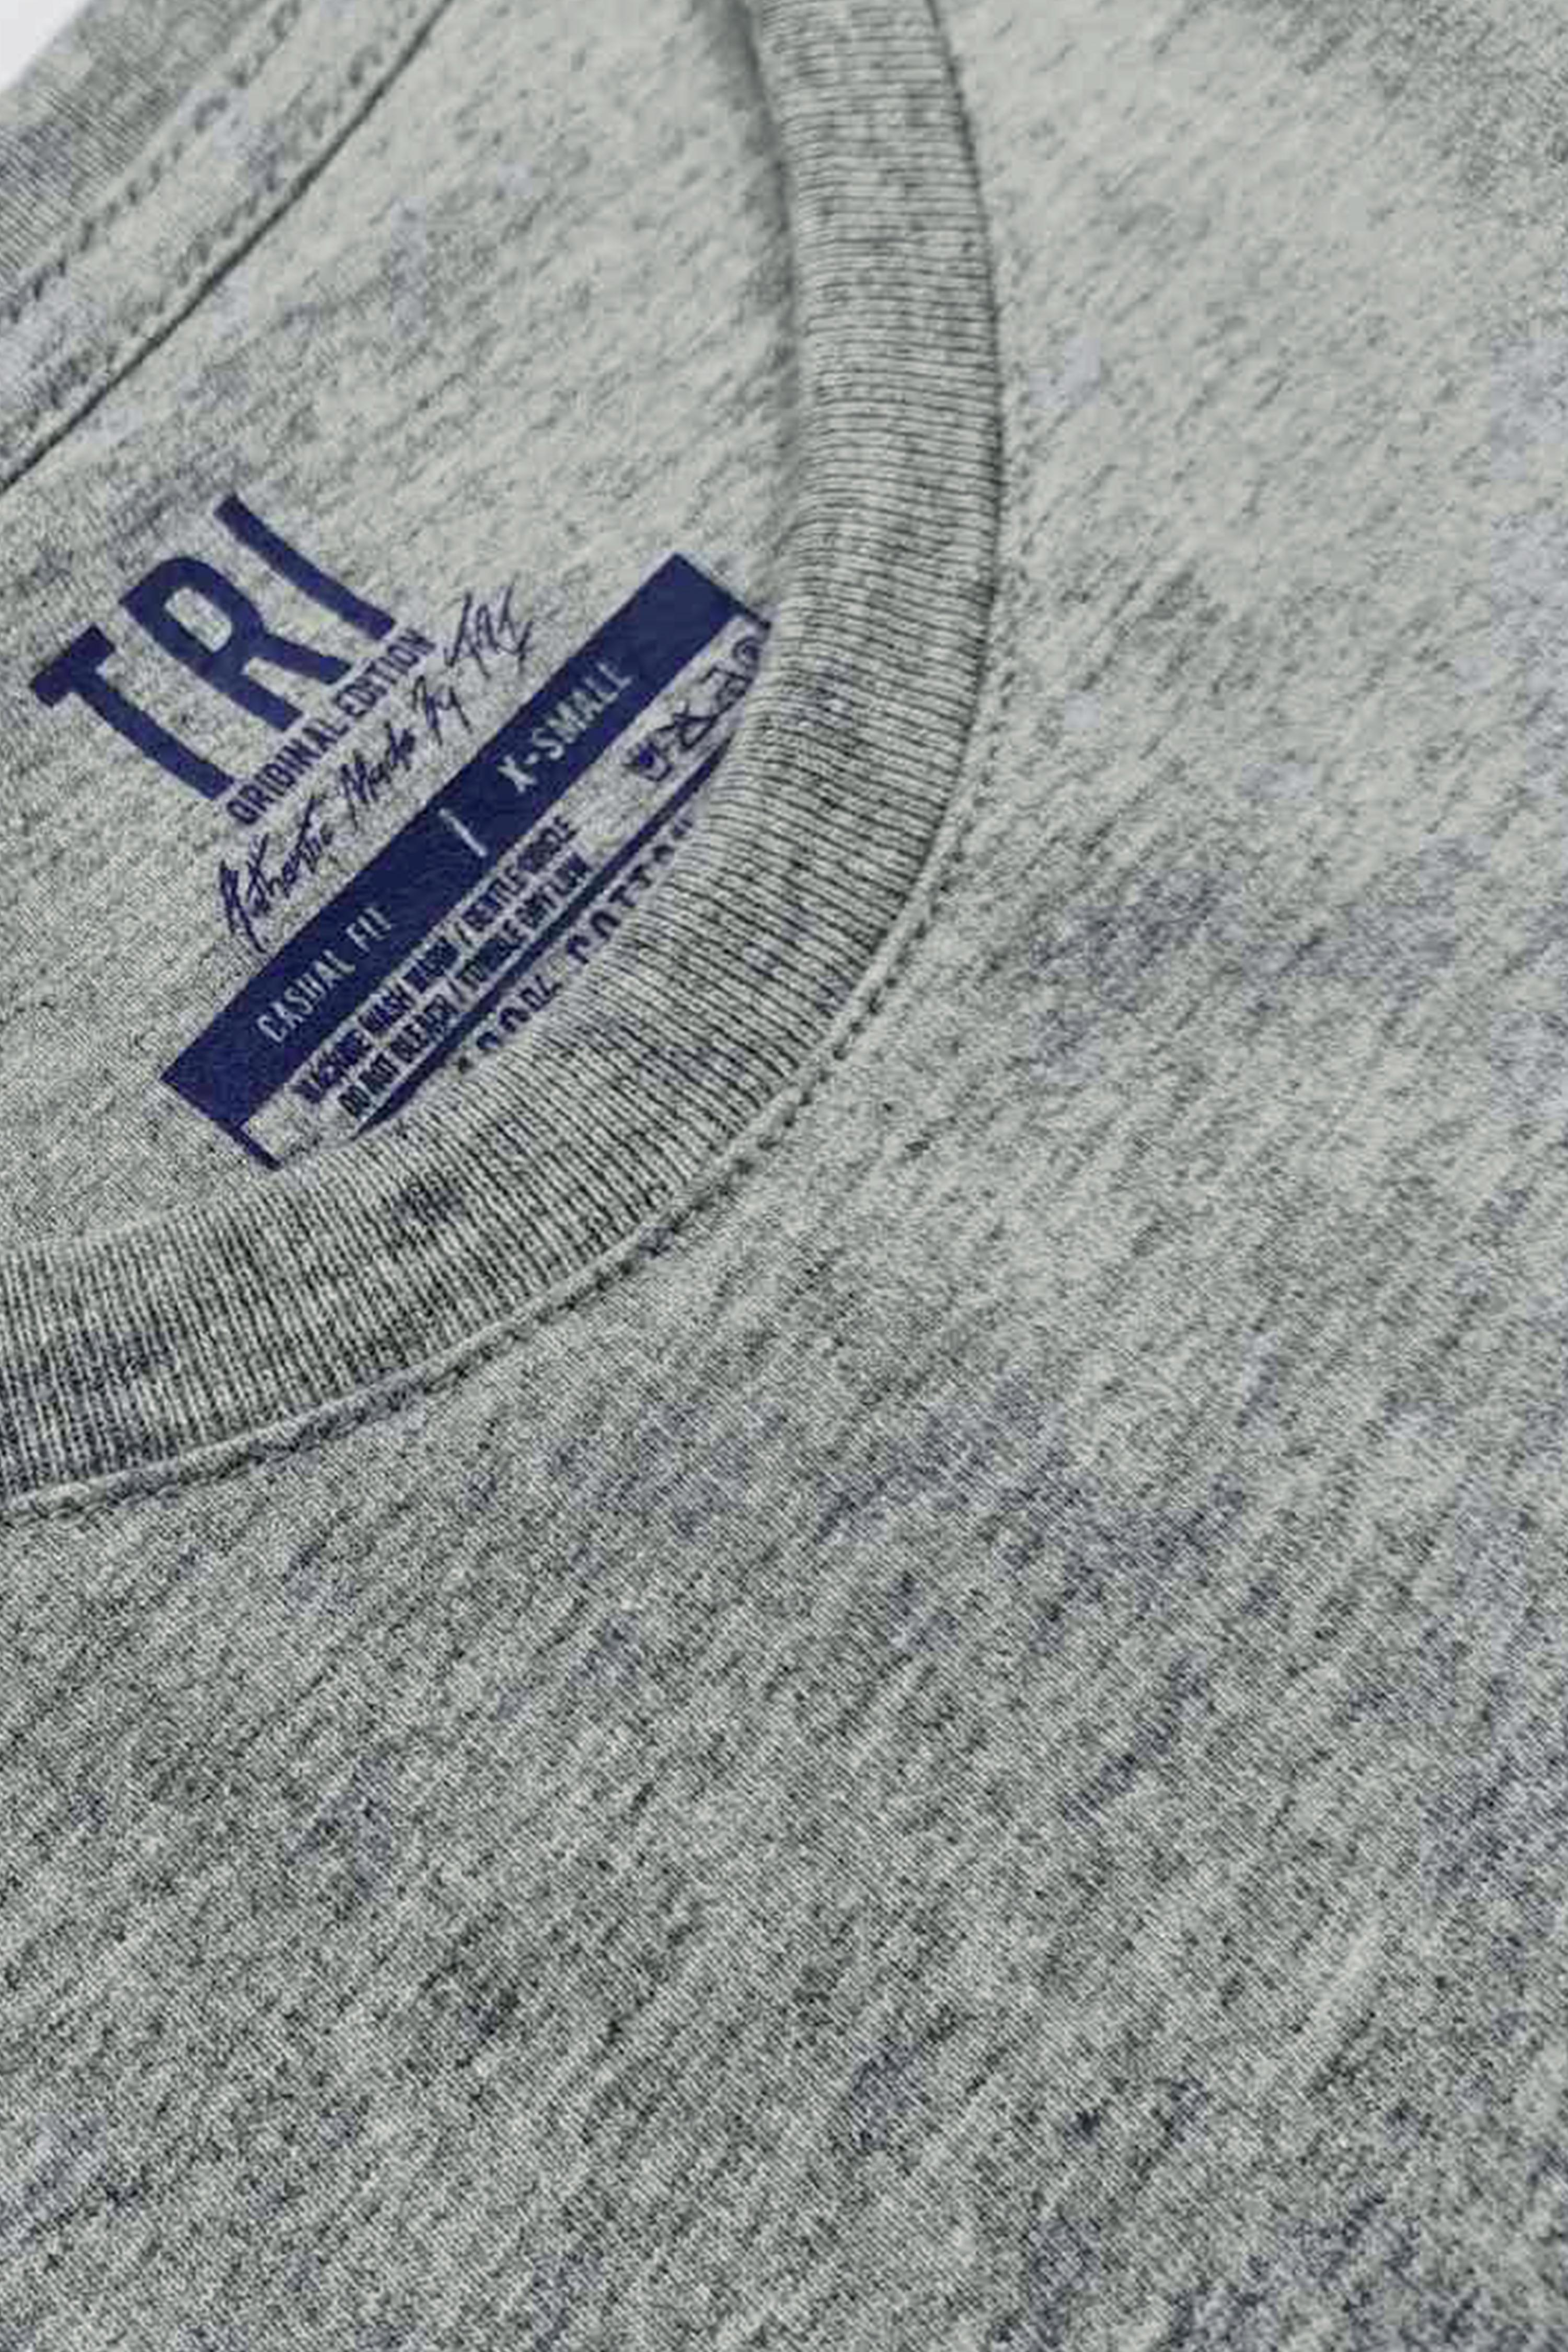 TRI Graphic T-Shirt T-8127